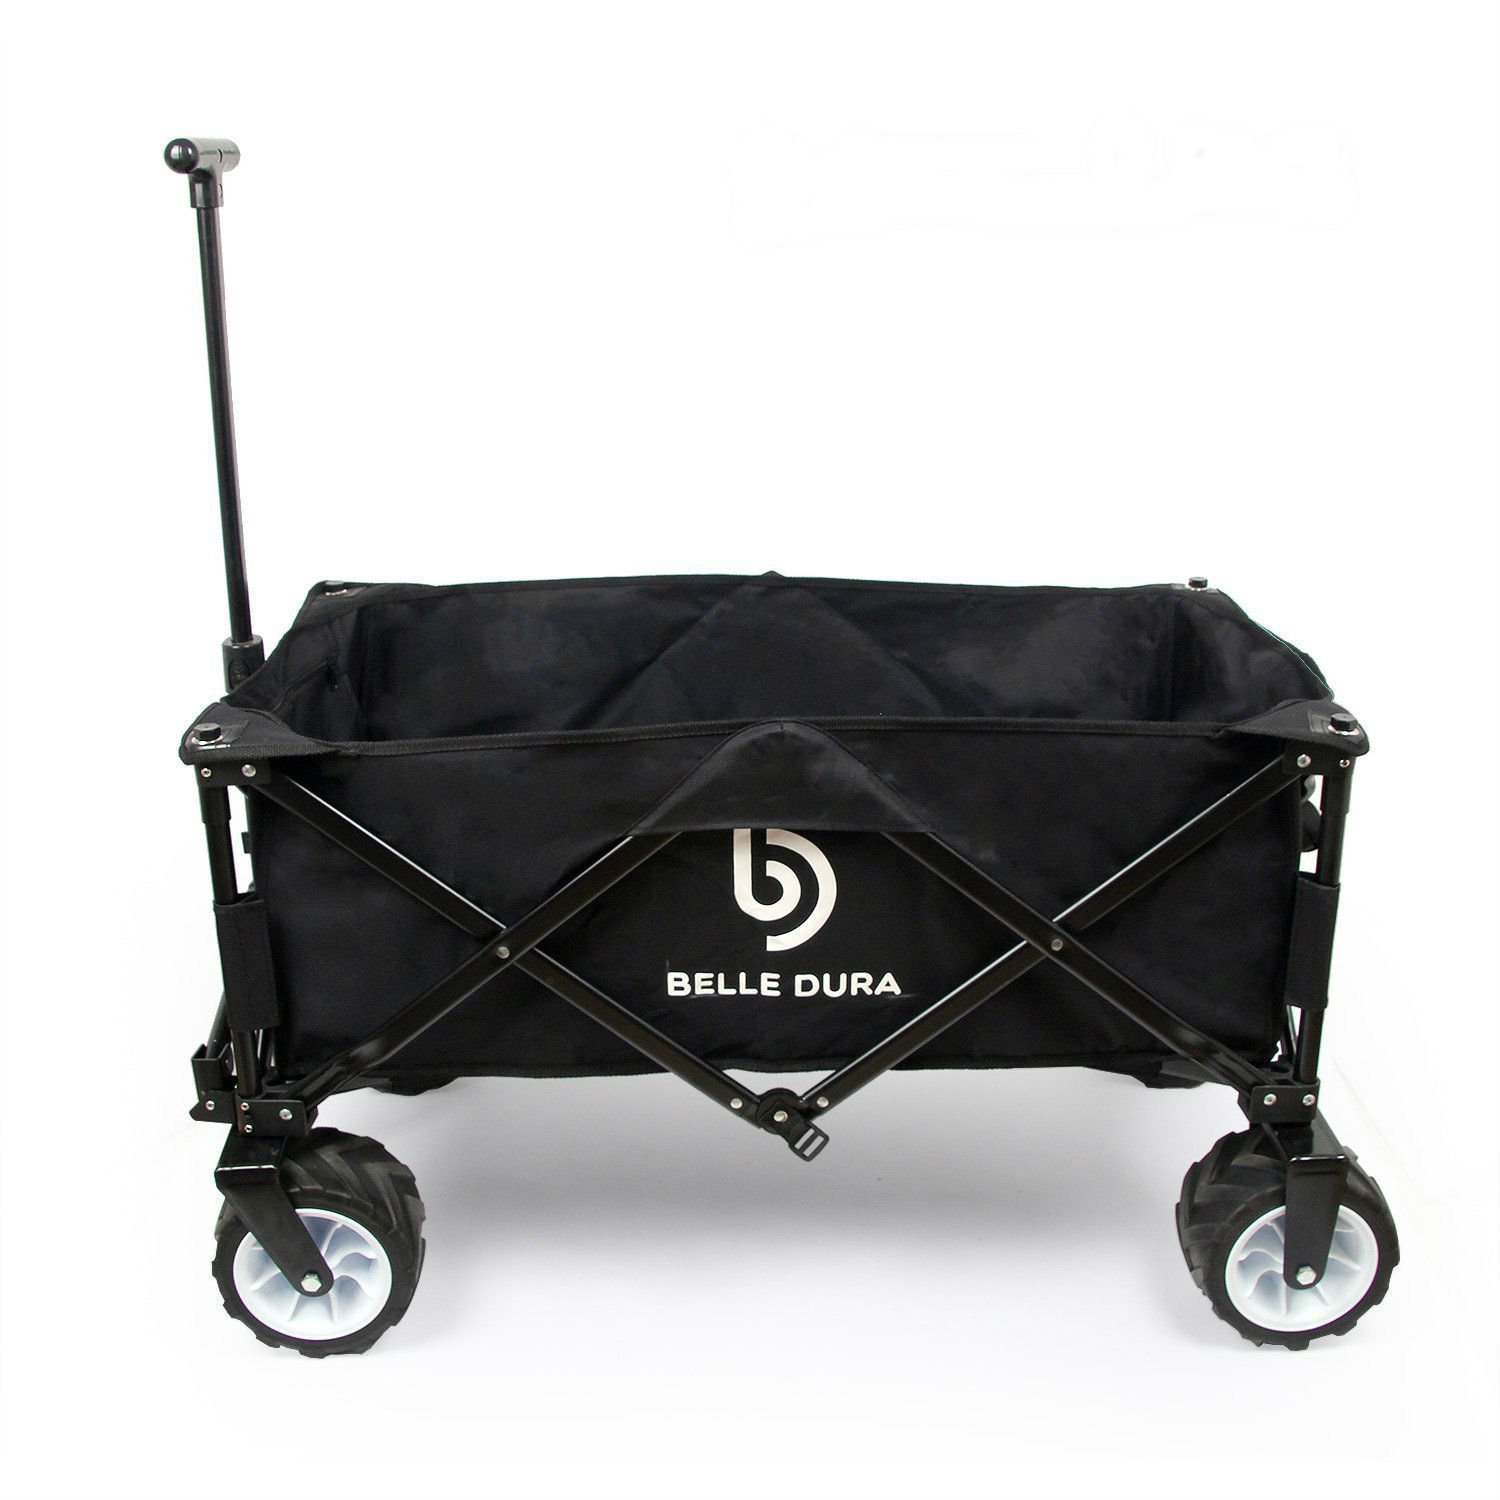 Belle Dura Folding Wagons, Collapsible Camping Utility Beach Cart Black with Beach Wheels and Sturdy Steel Frame for Outdoor Shopping Garden Wagon Cart by Belle Dura